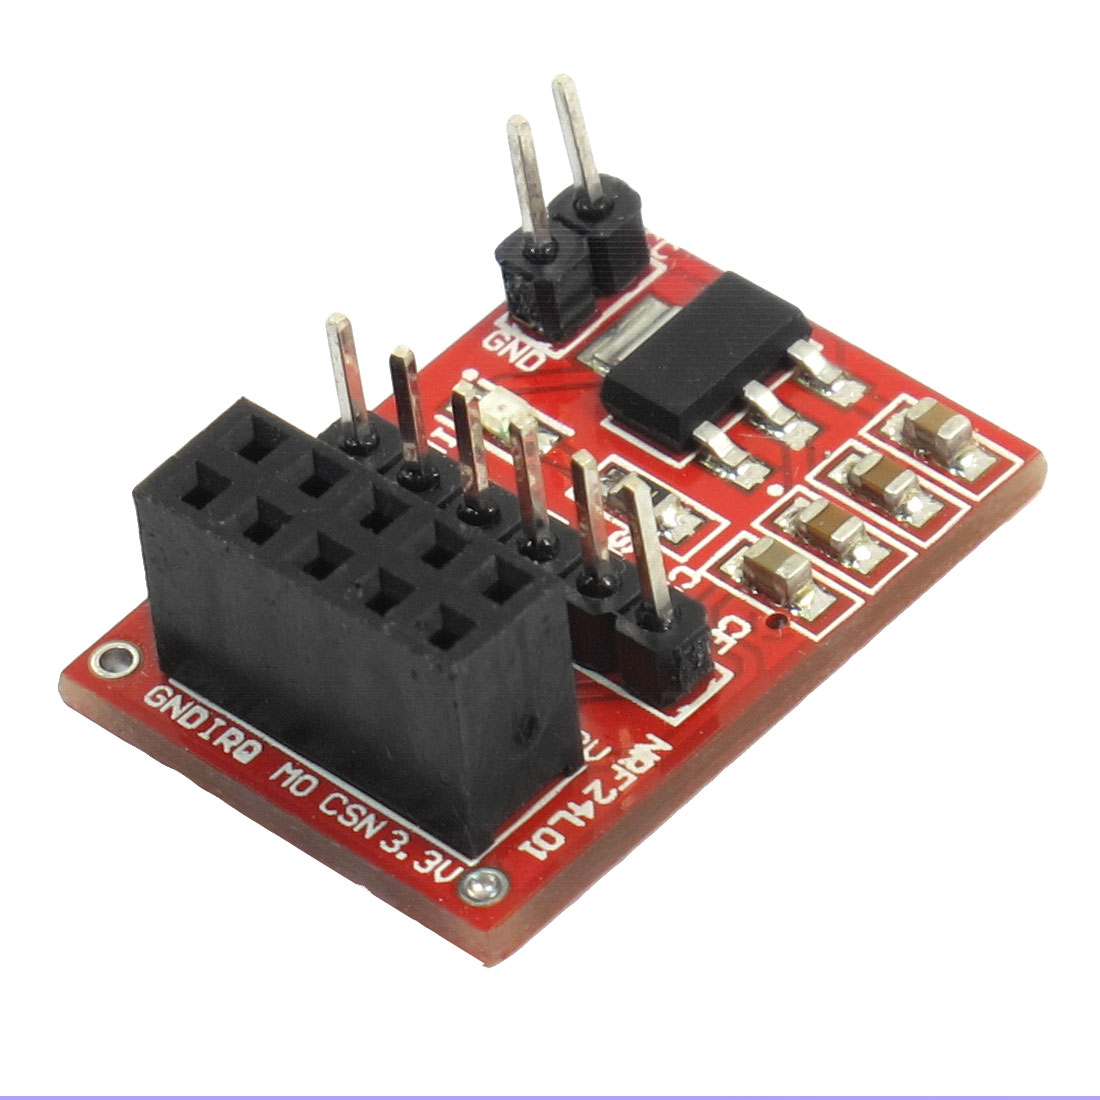 24L01 Electronic Wireless Connecting Plate Module Red Black 3.3V